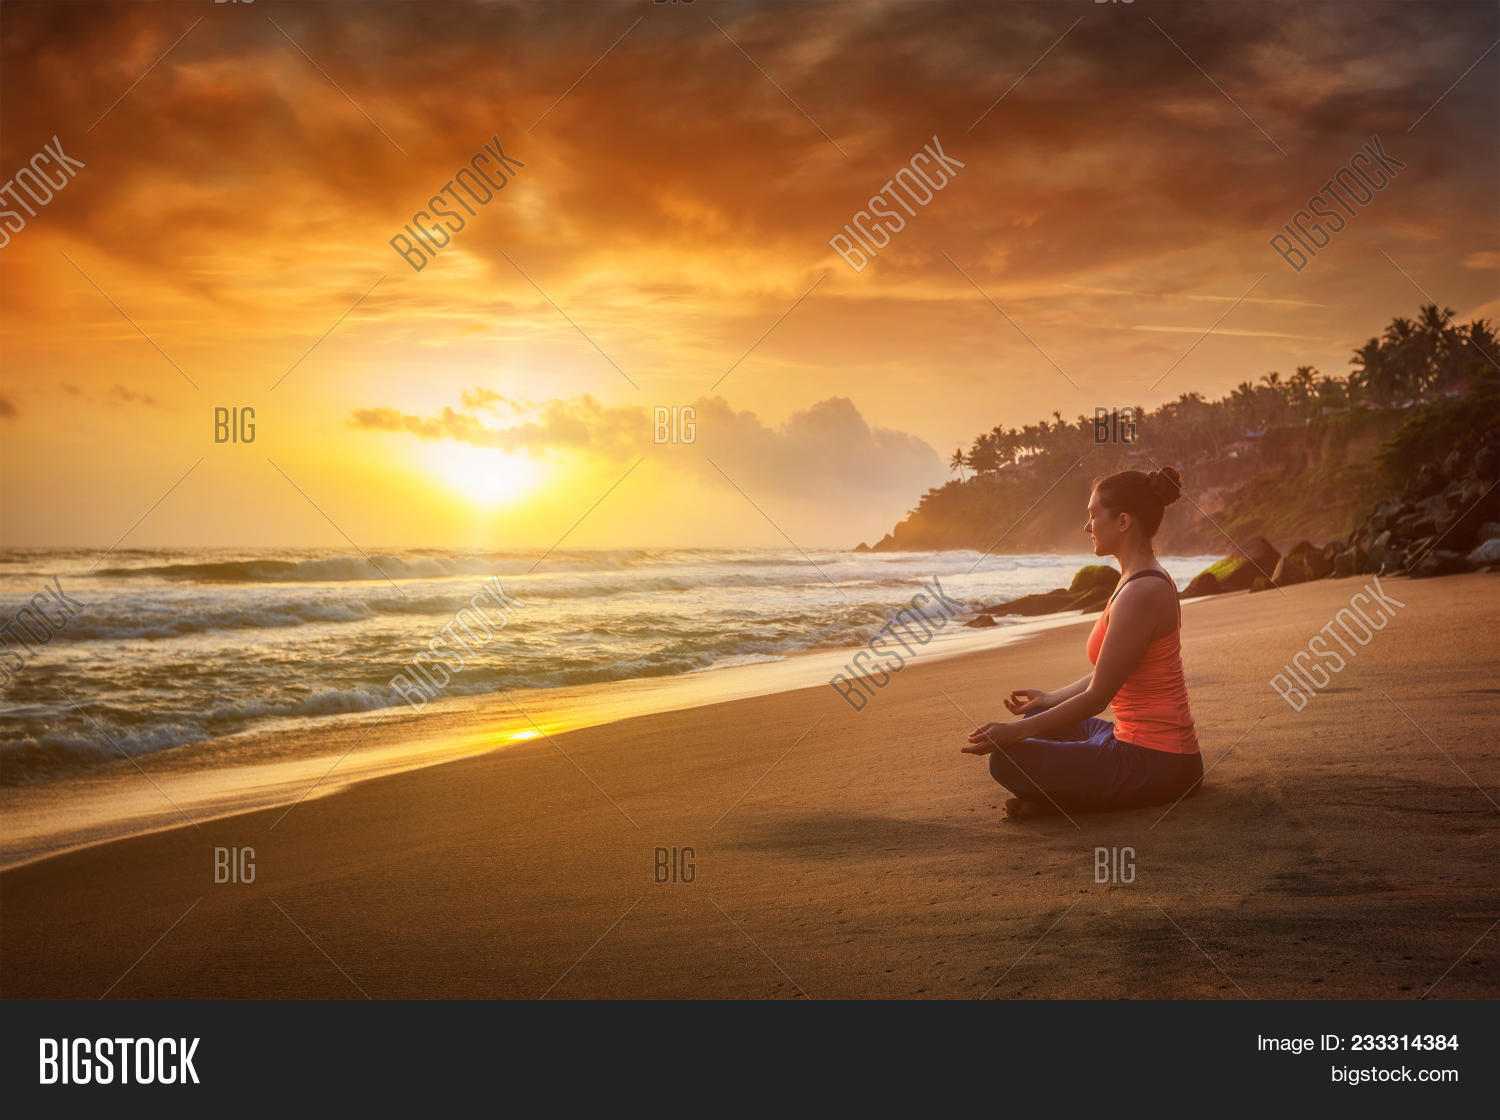 activity,asana,baddha padmasana,beach,bound lotus pose,chin mudra,contemplation,cross-legged,exercise,female,fitness,flexible,girl,health,healthy,healthy lifestyle,lotus,lotus pose,meditate,meditation,meditative,mudra,outdoors,padmasana,pose,position,relax,relaxation,restrained lotus posture,sport,sunset,training,woman,workout,yoga,yoga mudra,yogi,yogic,young,zen